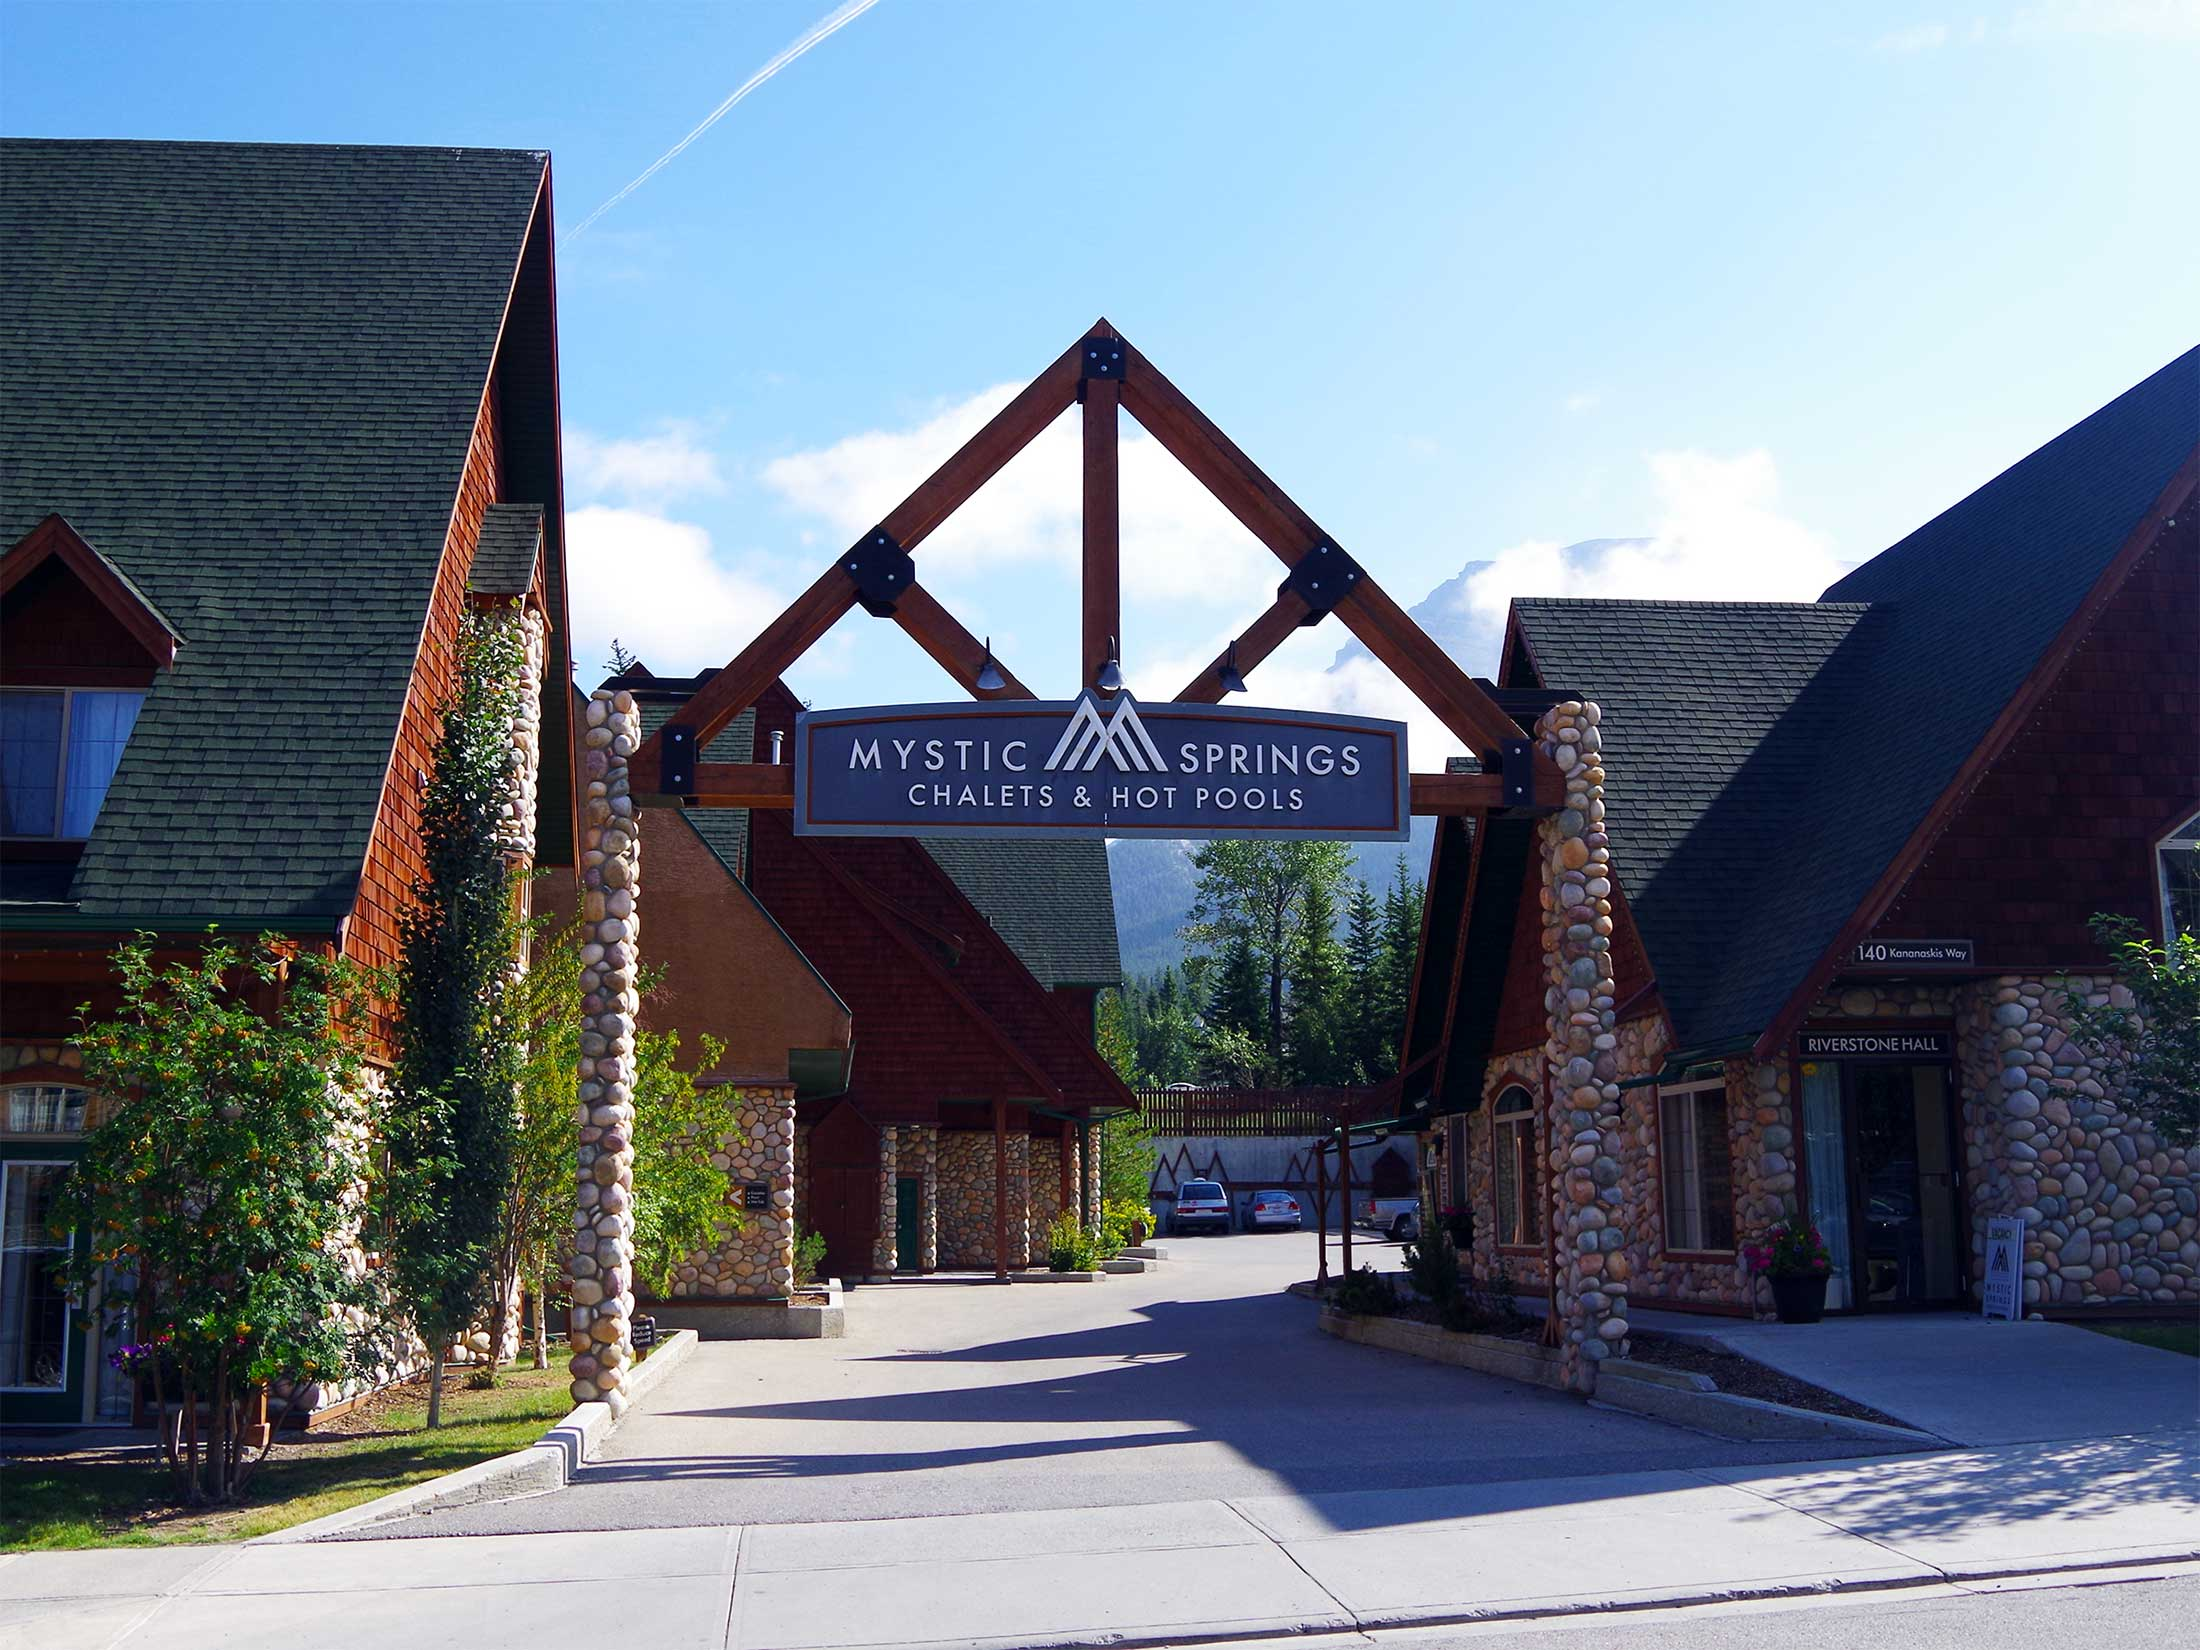 Mystic Springs - Hotels in Canmore, Alberta - Mystic Springs Chalets is home to Canmore's largest outdoor swimming pool and more than 40 luxury fully self-catering condo style hotel suites.